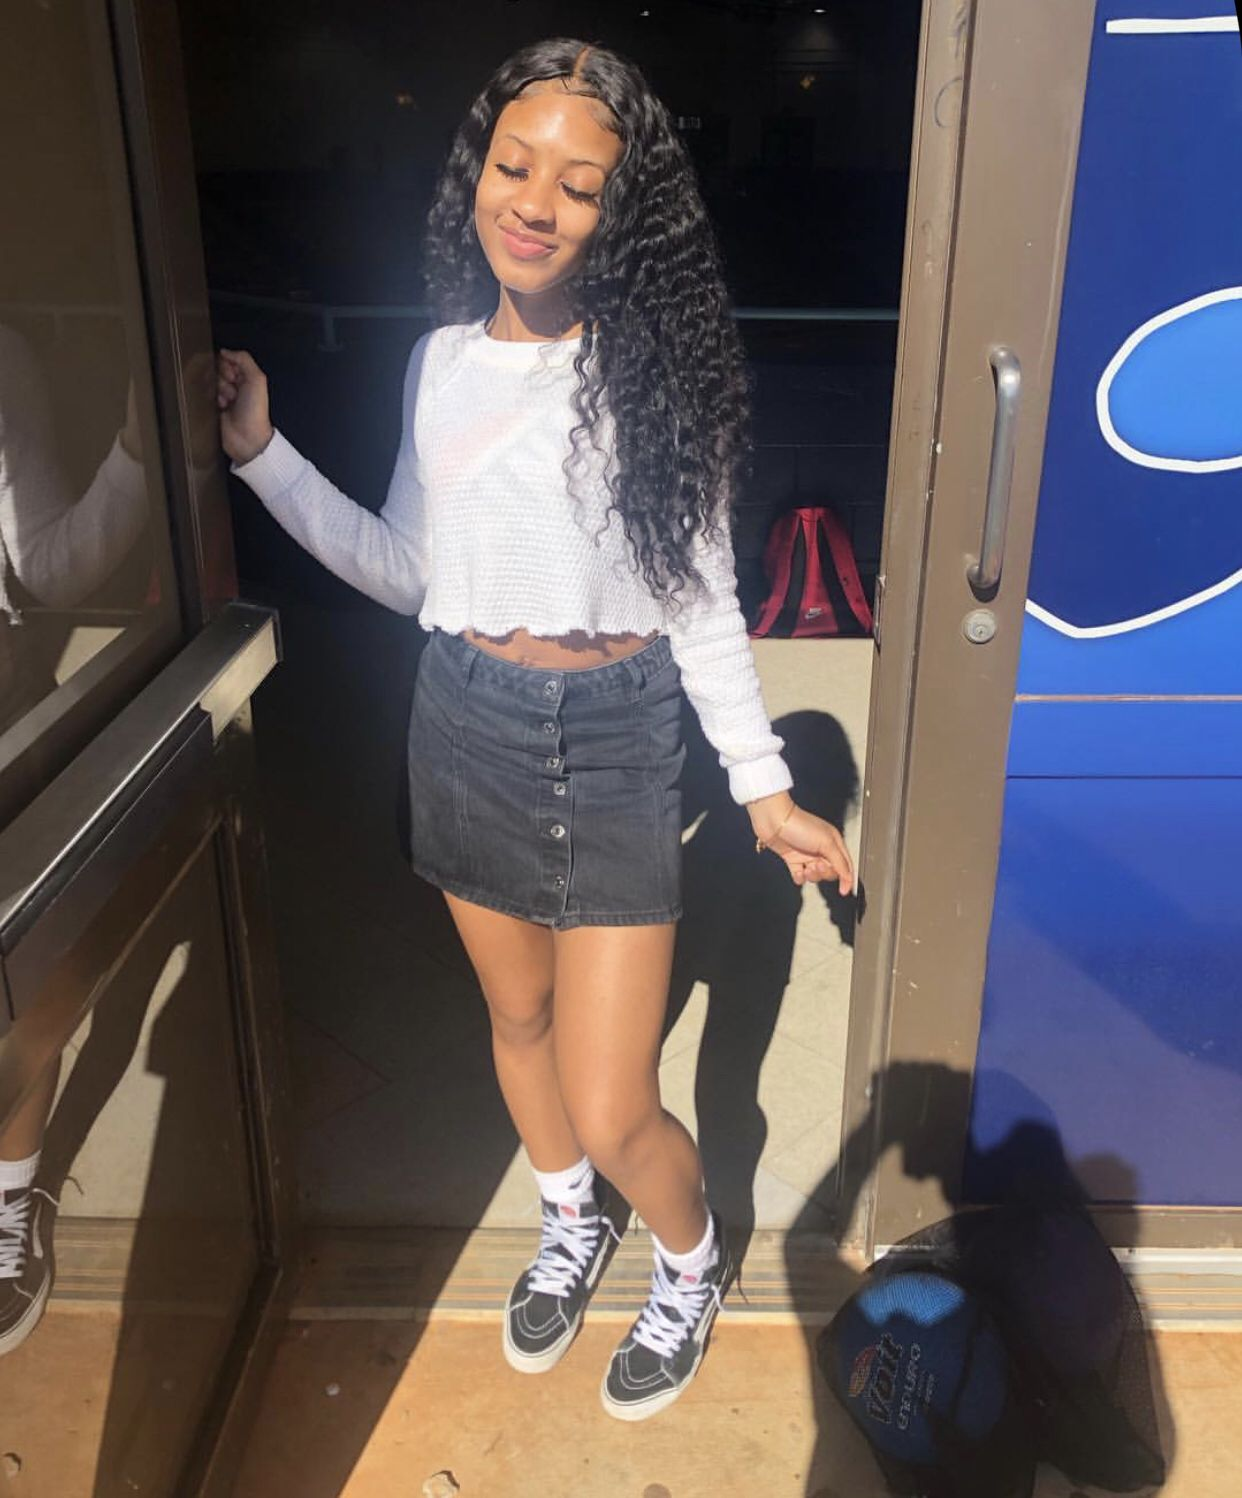 school daze  Black girl outfits, Going out outfits, Cute outfits